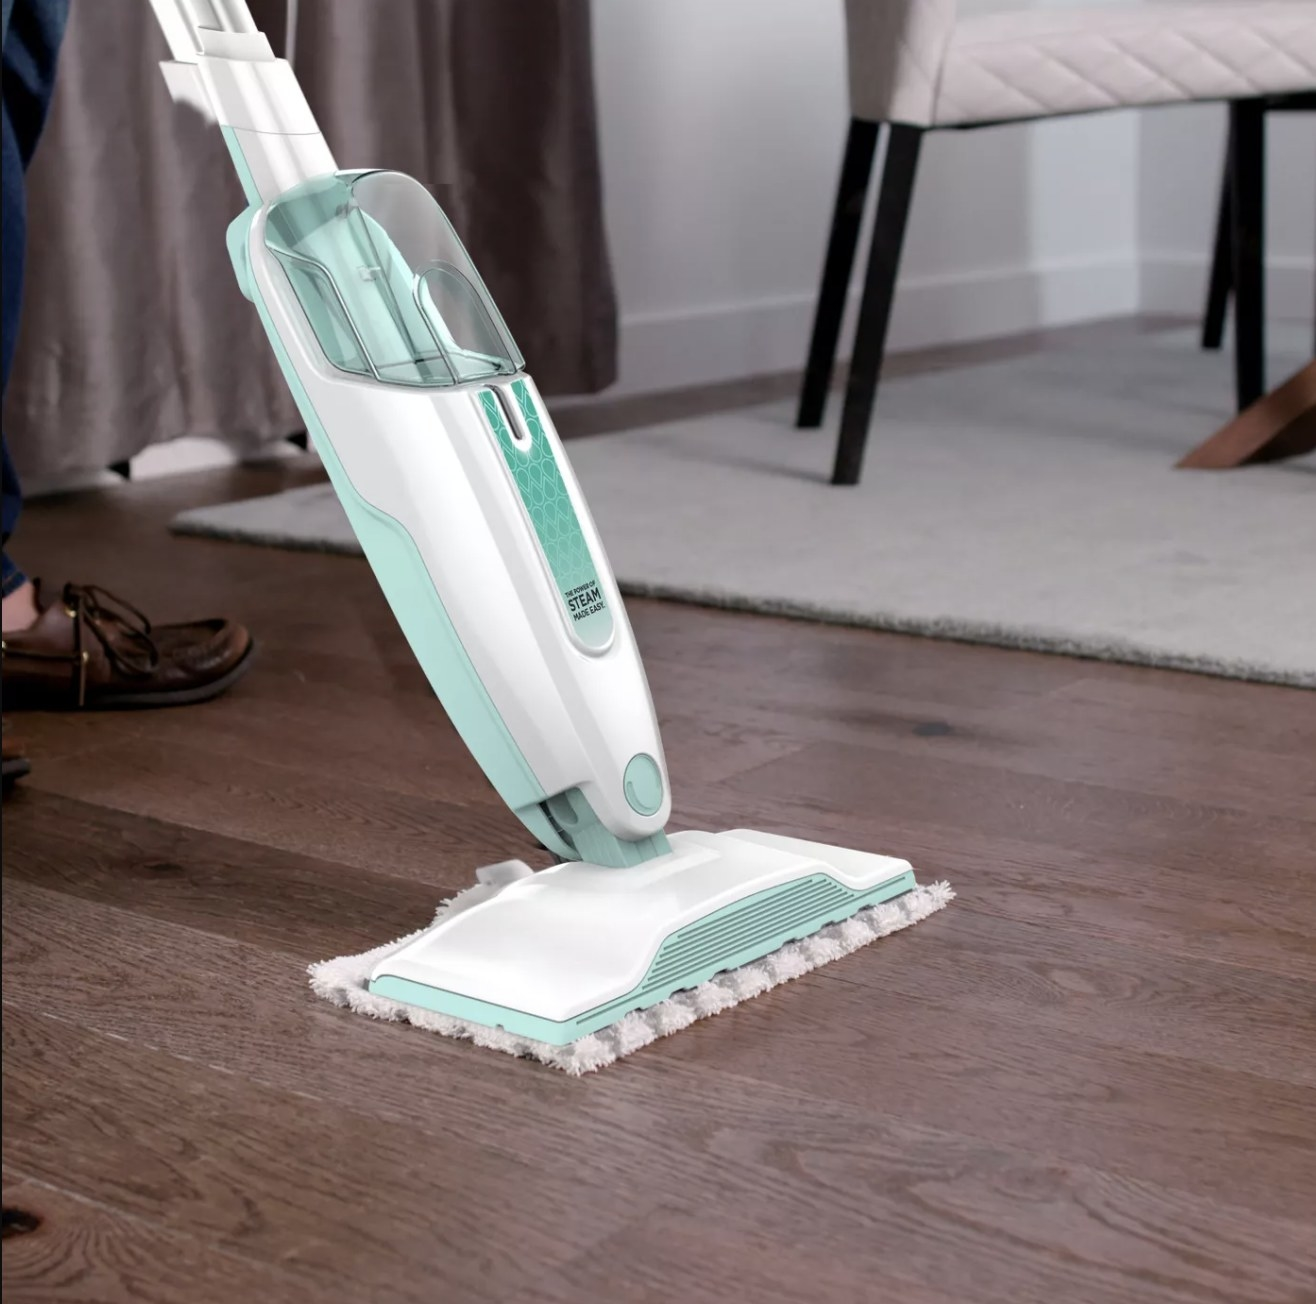 The steam mop cleaning a hardwood floor